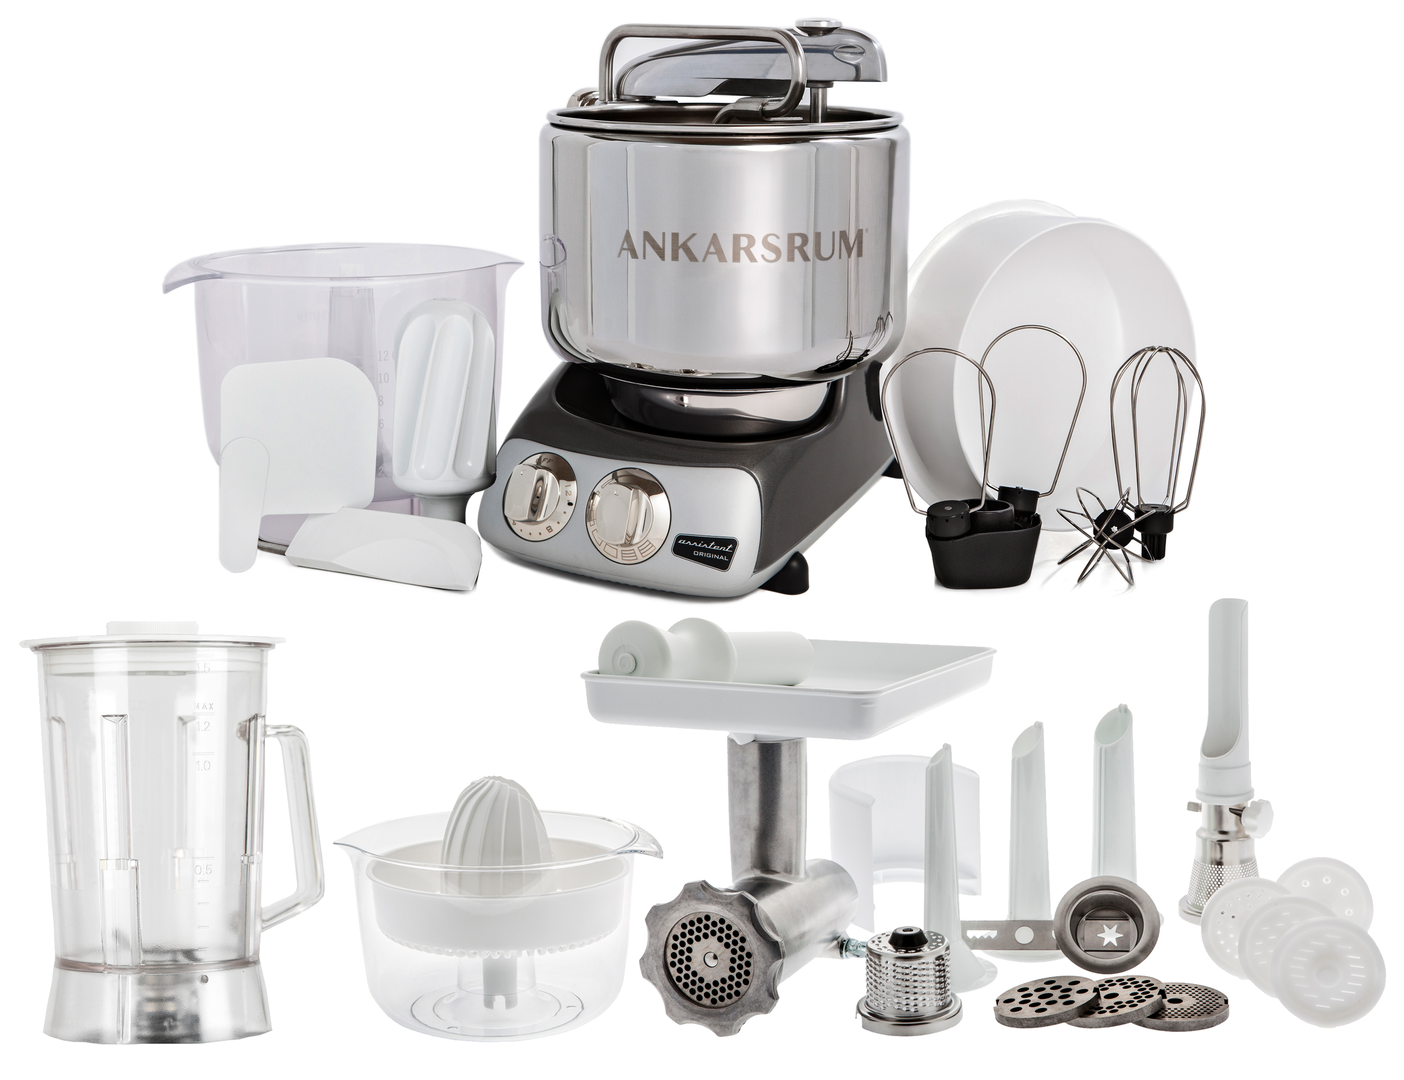 Ankarsrum Original AKM6220BC Deluxe mixer, black chrome (2300107)